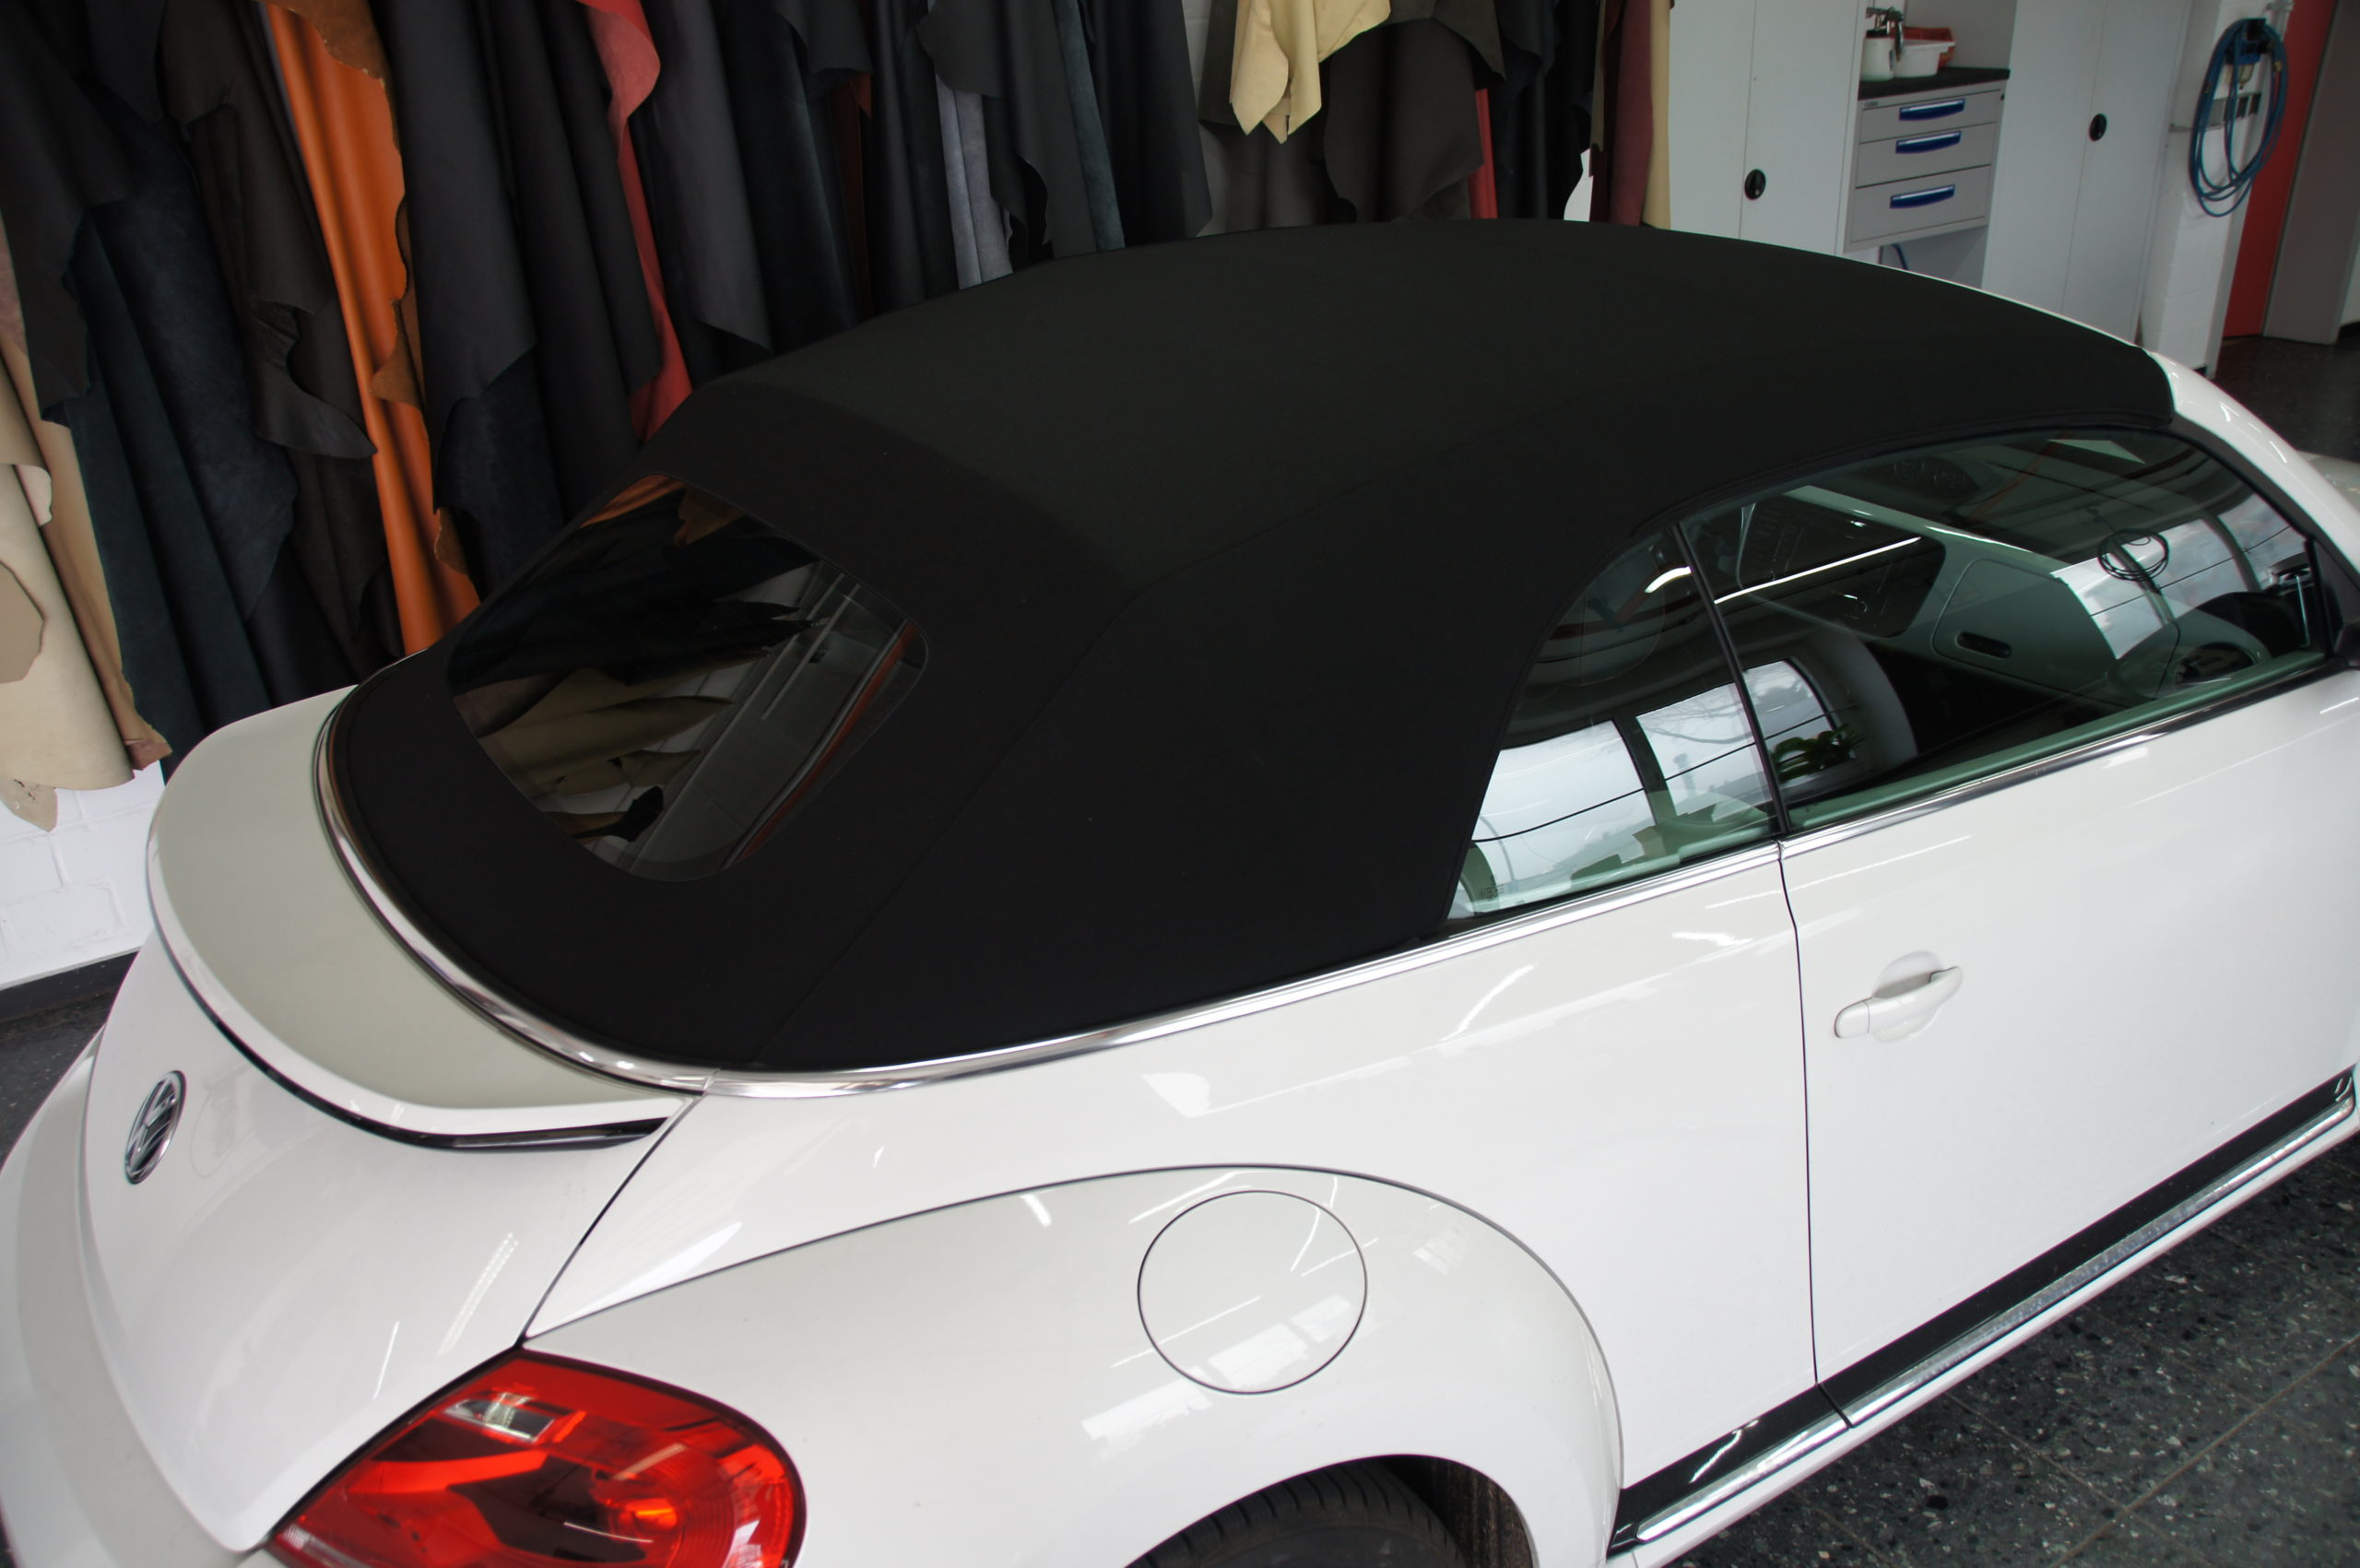 VW New Beetle & Beetle Cabrioverdeck